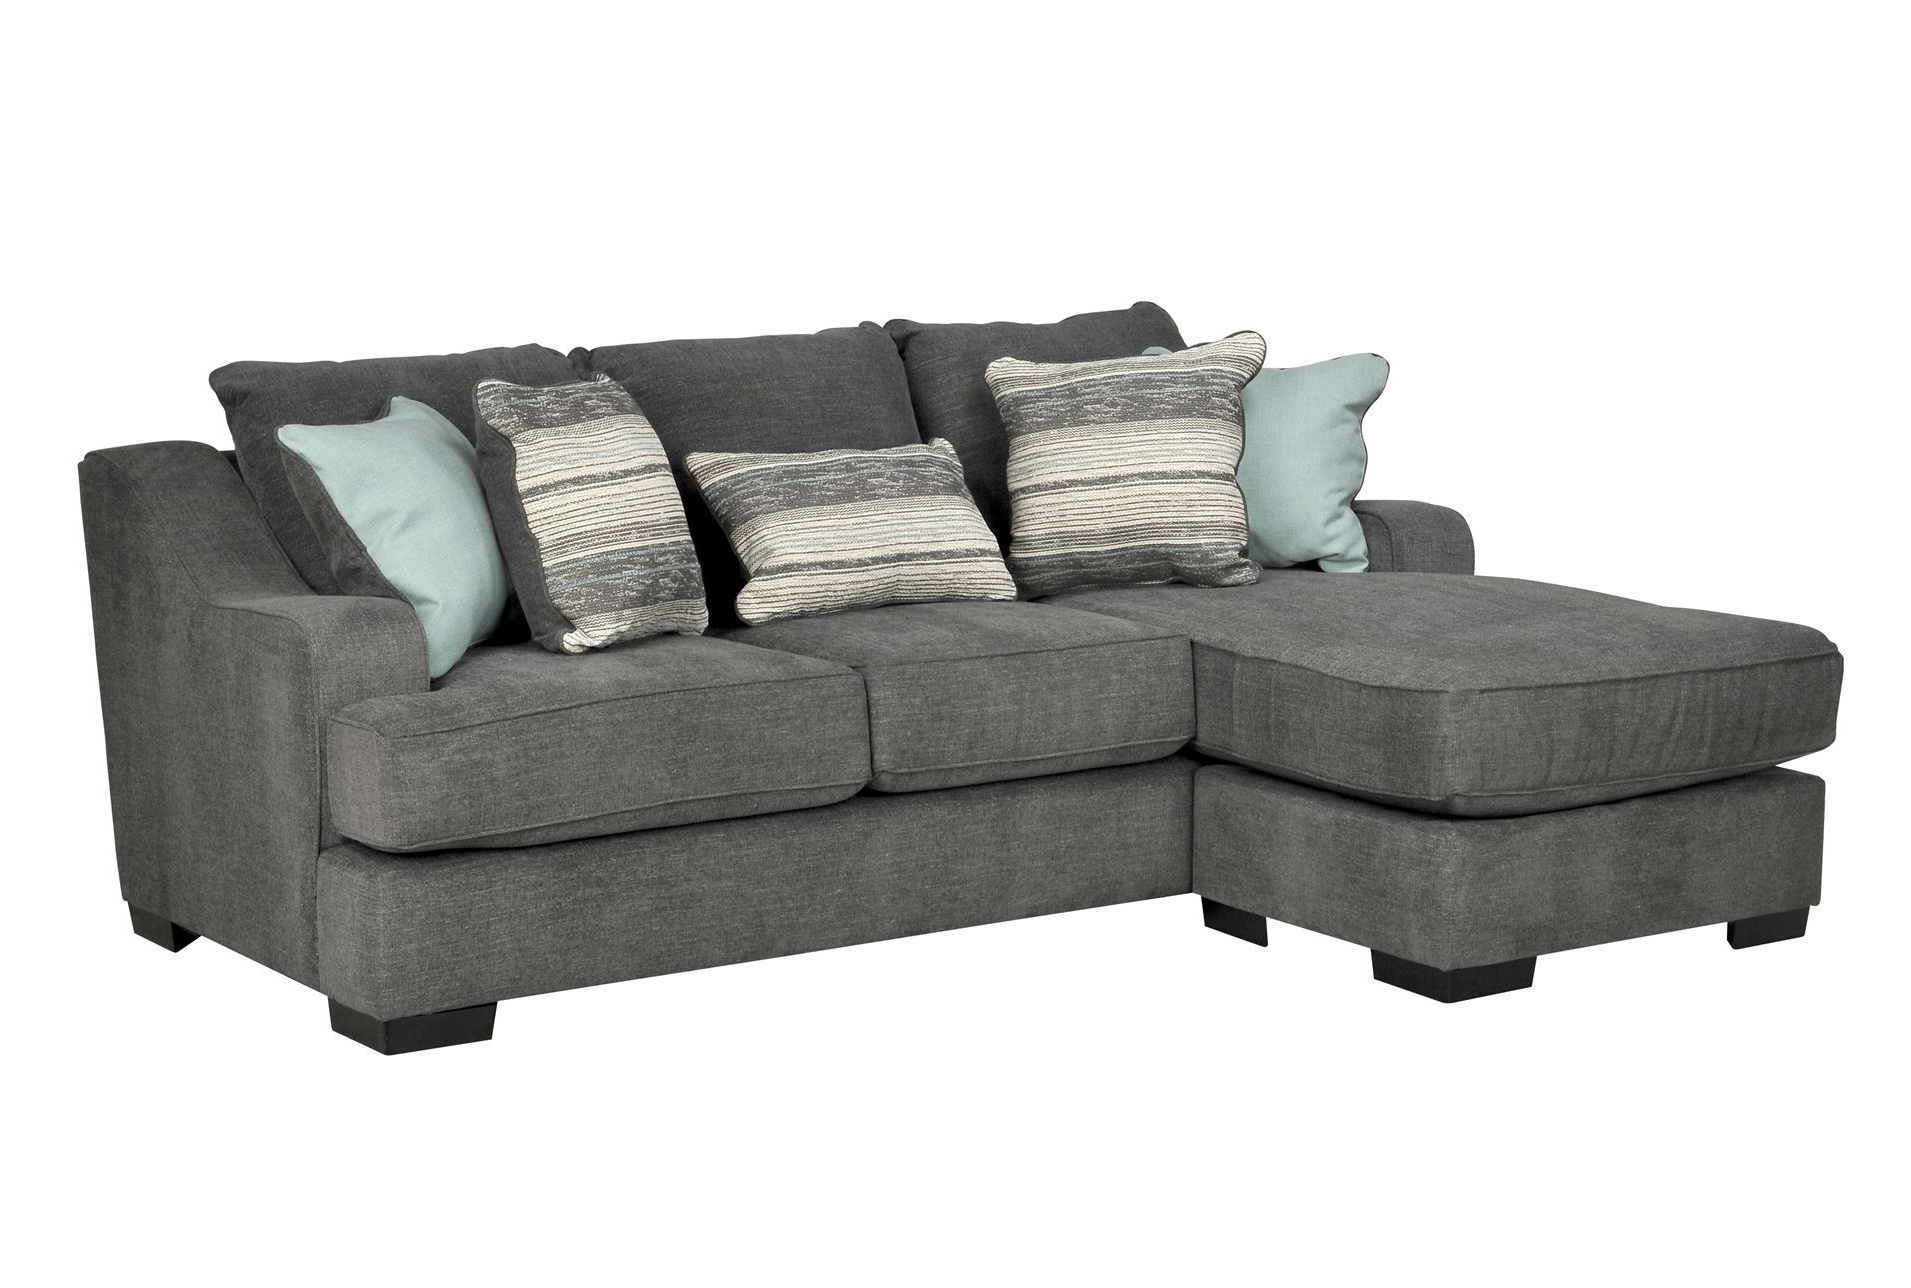 Recent Gray Chaise Sofas Pertaining To Couch Stunning Grey Couch With Chaise Hd Wallpaper Photographs (View 11 of 15)